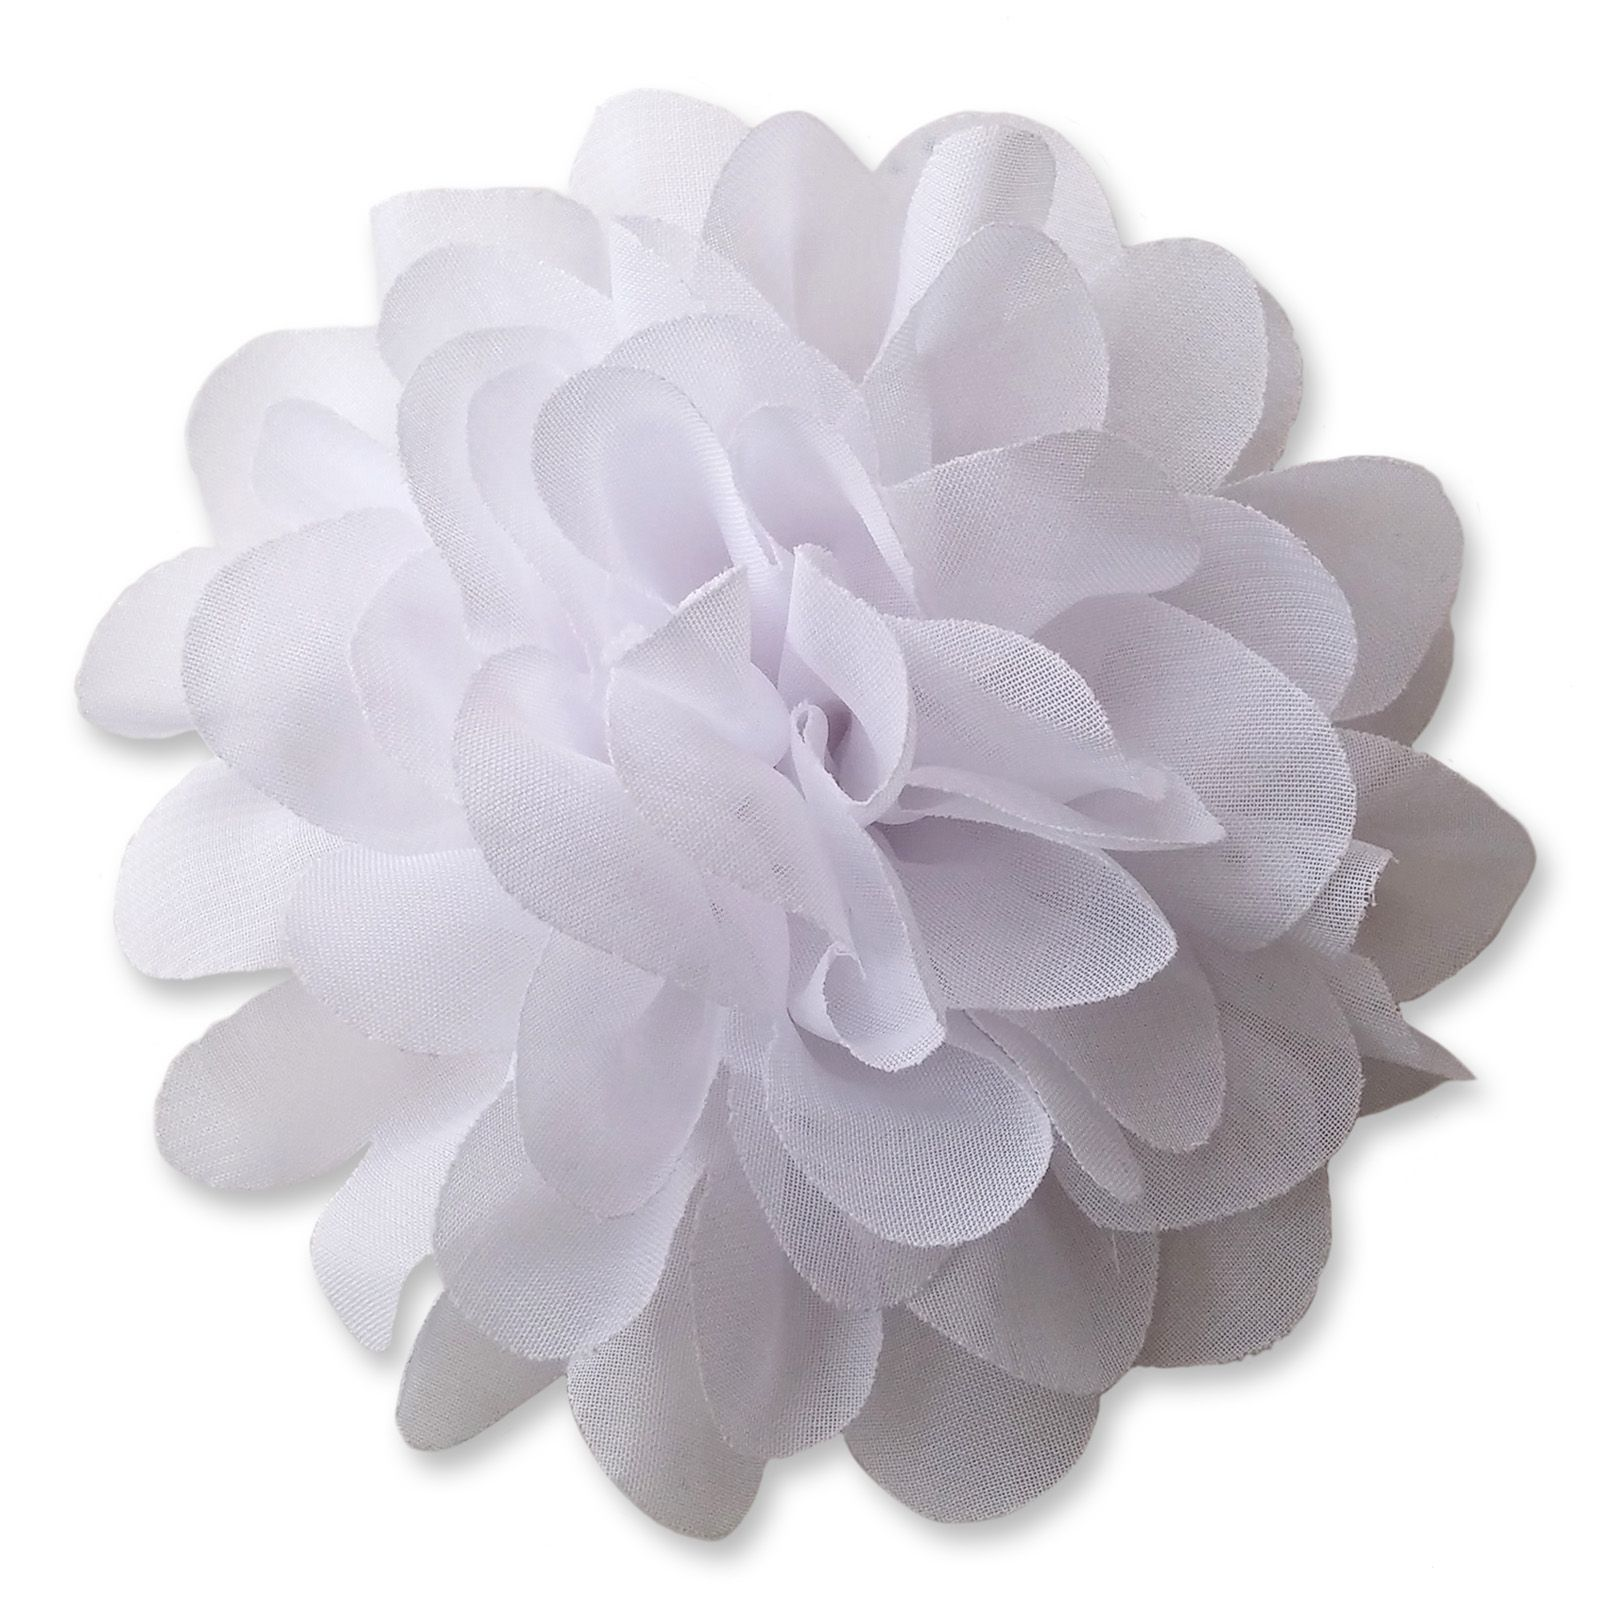 10cm pompom bloom white fabric flower applique mightylinksfo